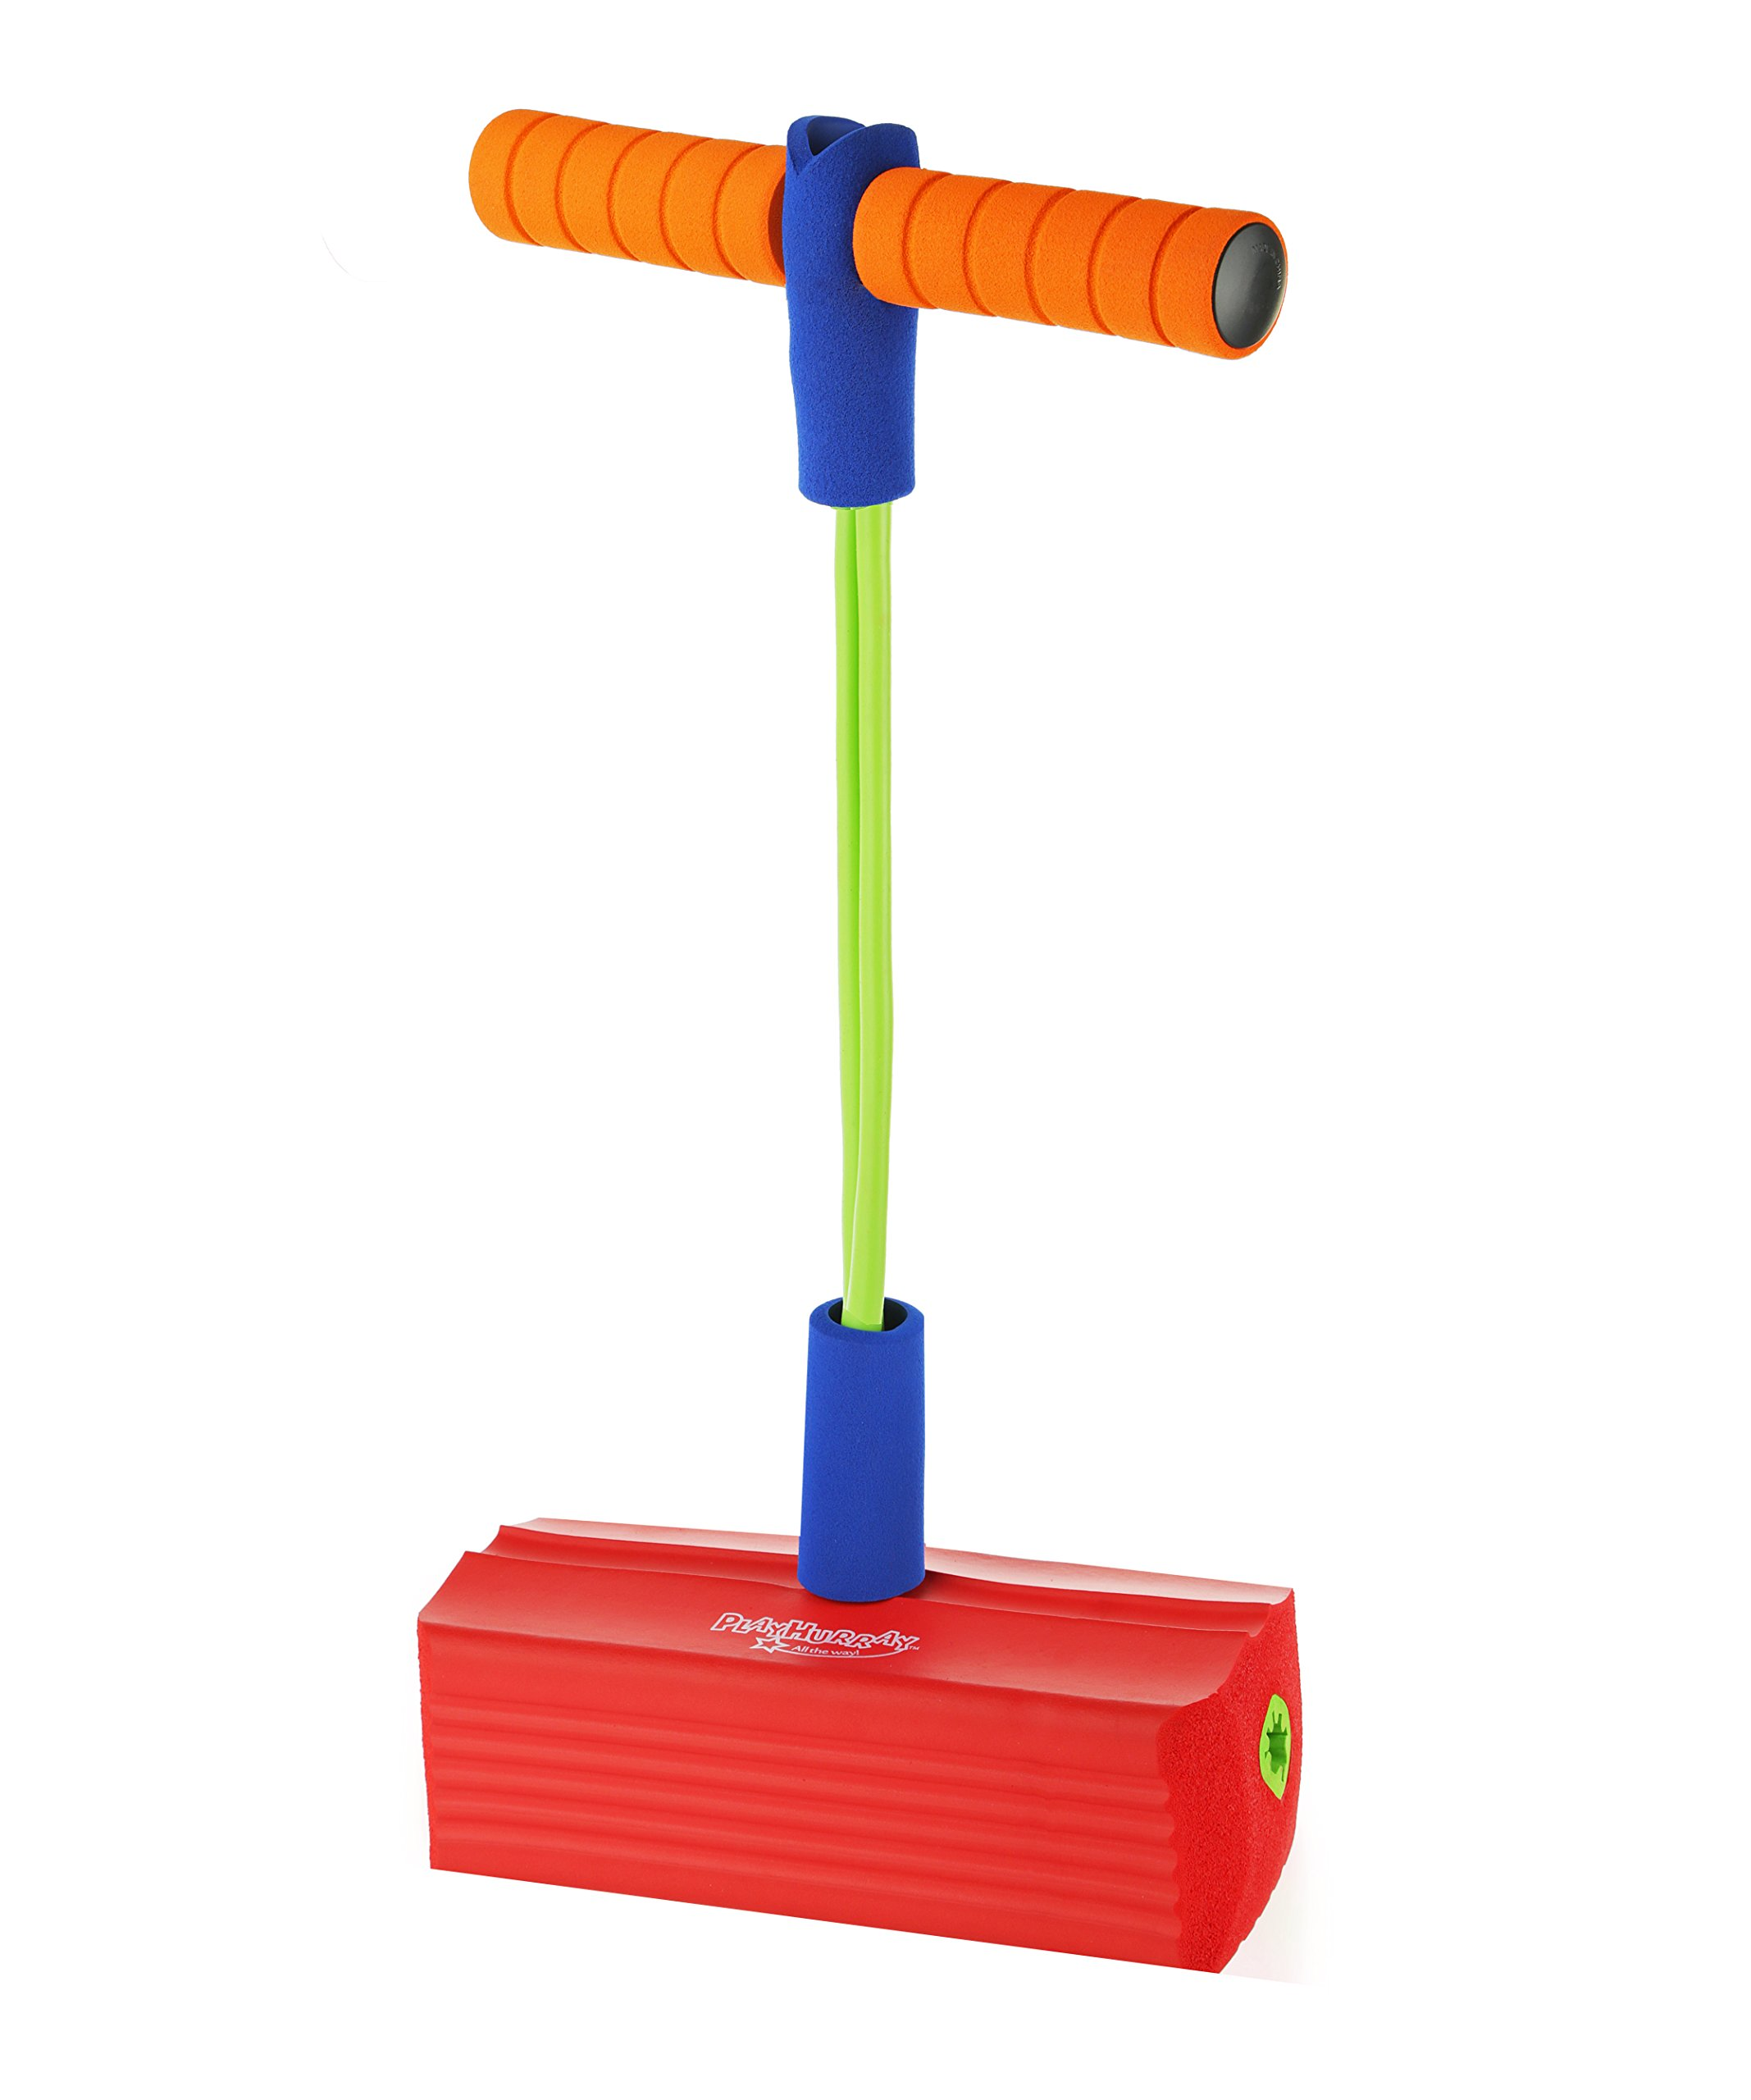 PlayHurray The Original Foam Pogo Jumper for Kids 100% SafePogo Stick, Strong Bungee Toy for Toddlers, Fun Foam Hopper for Children Boys/Girls, Squeaks with Each hop! Supports up to 250lbs. by PlayHurray